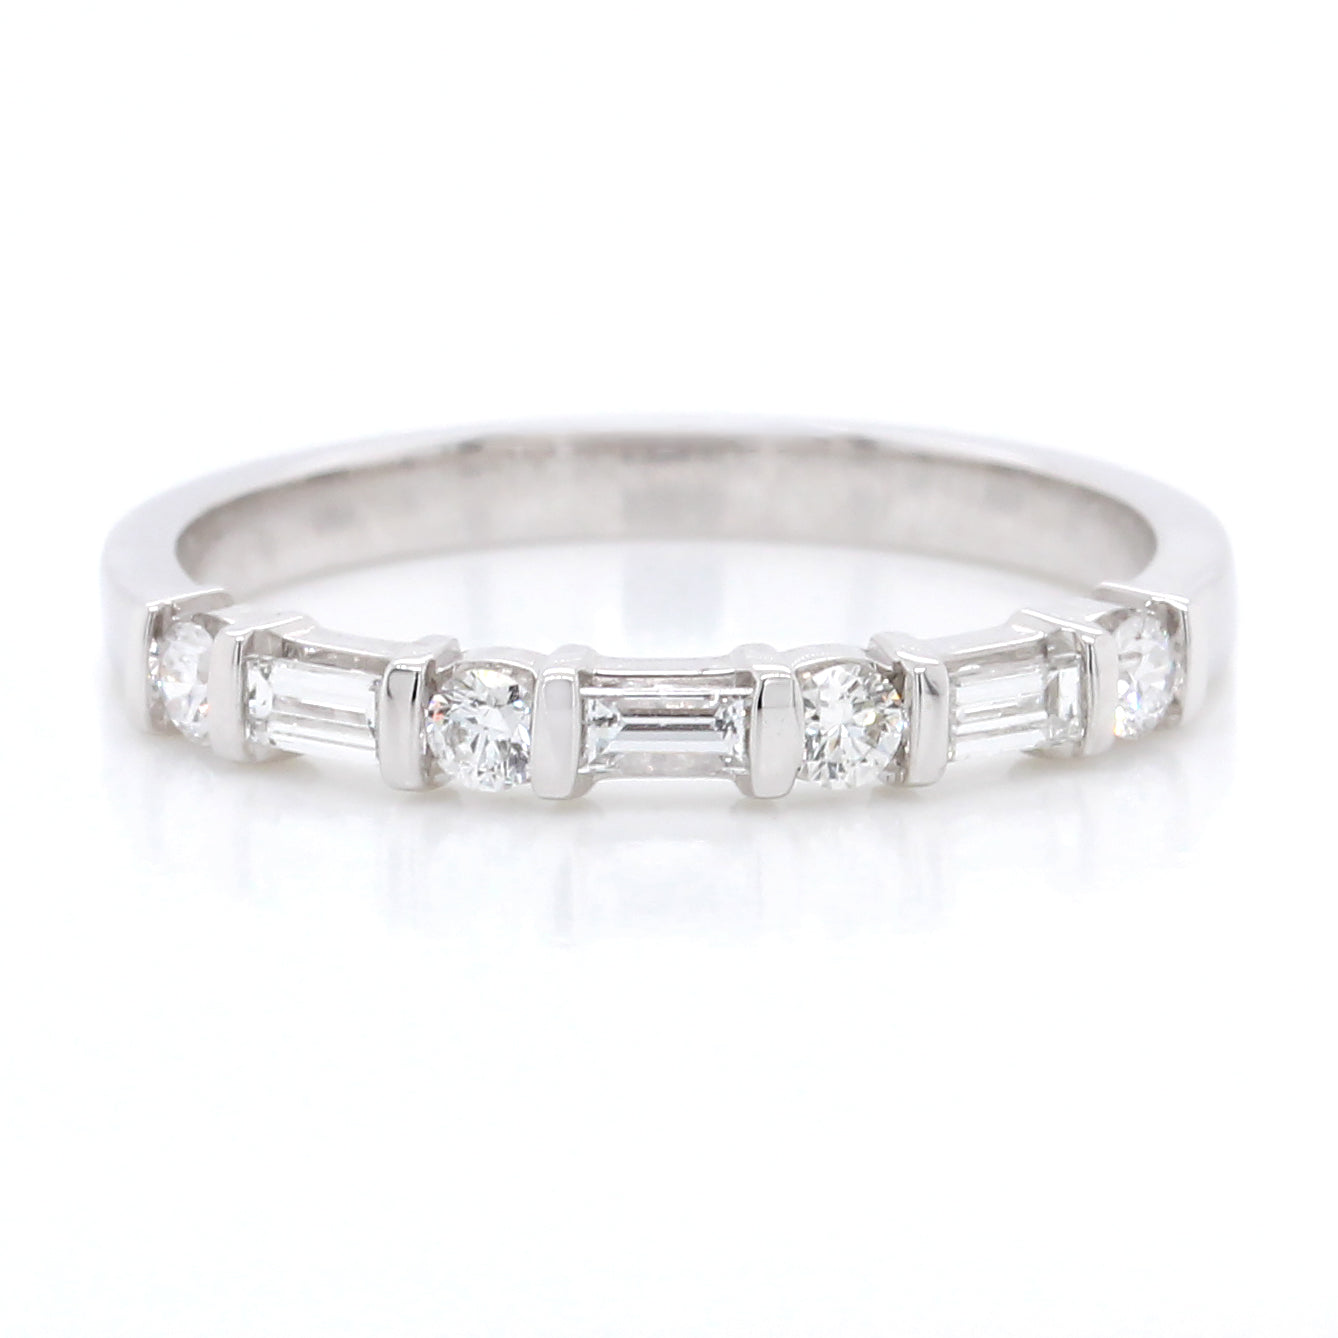 18K White Gold Alternating Round and Baguette Diamond Band